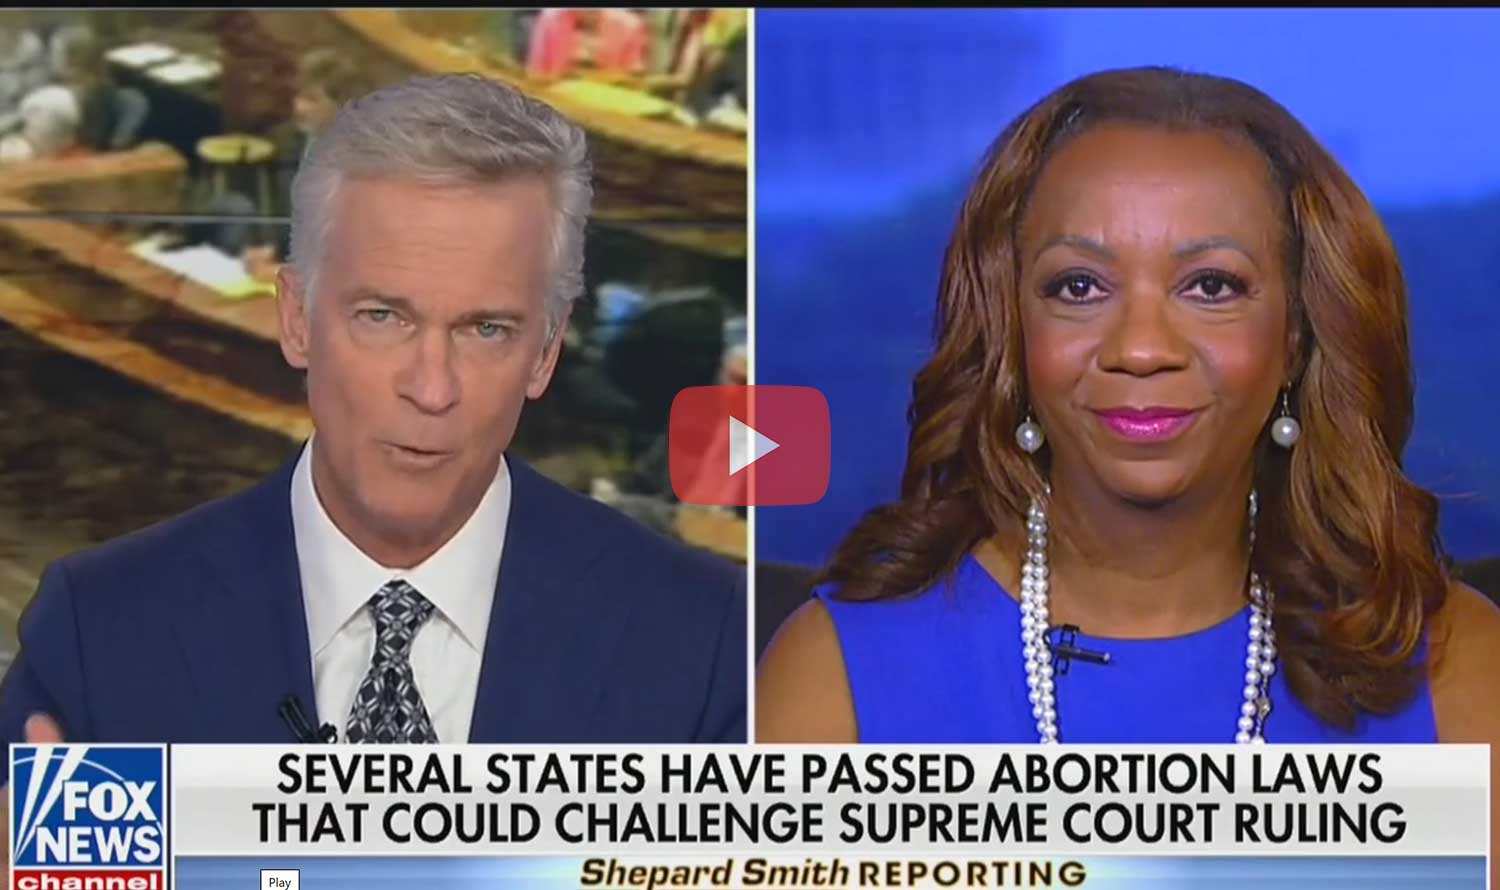 Fox News Shepard Smith Reporting - Debbie Hines on New Abortion Laws